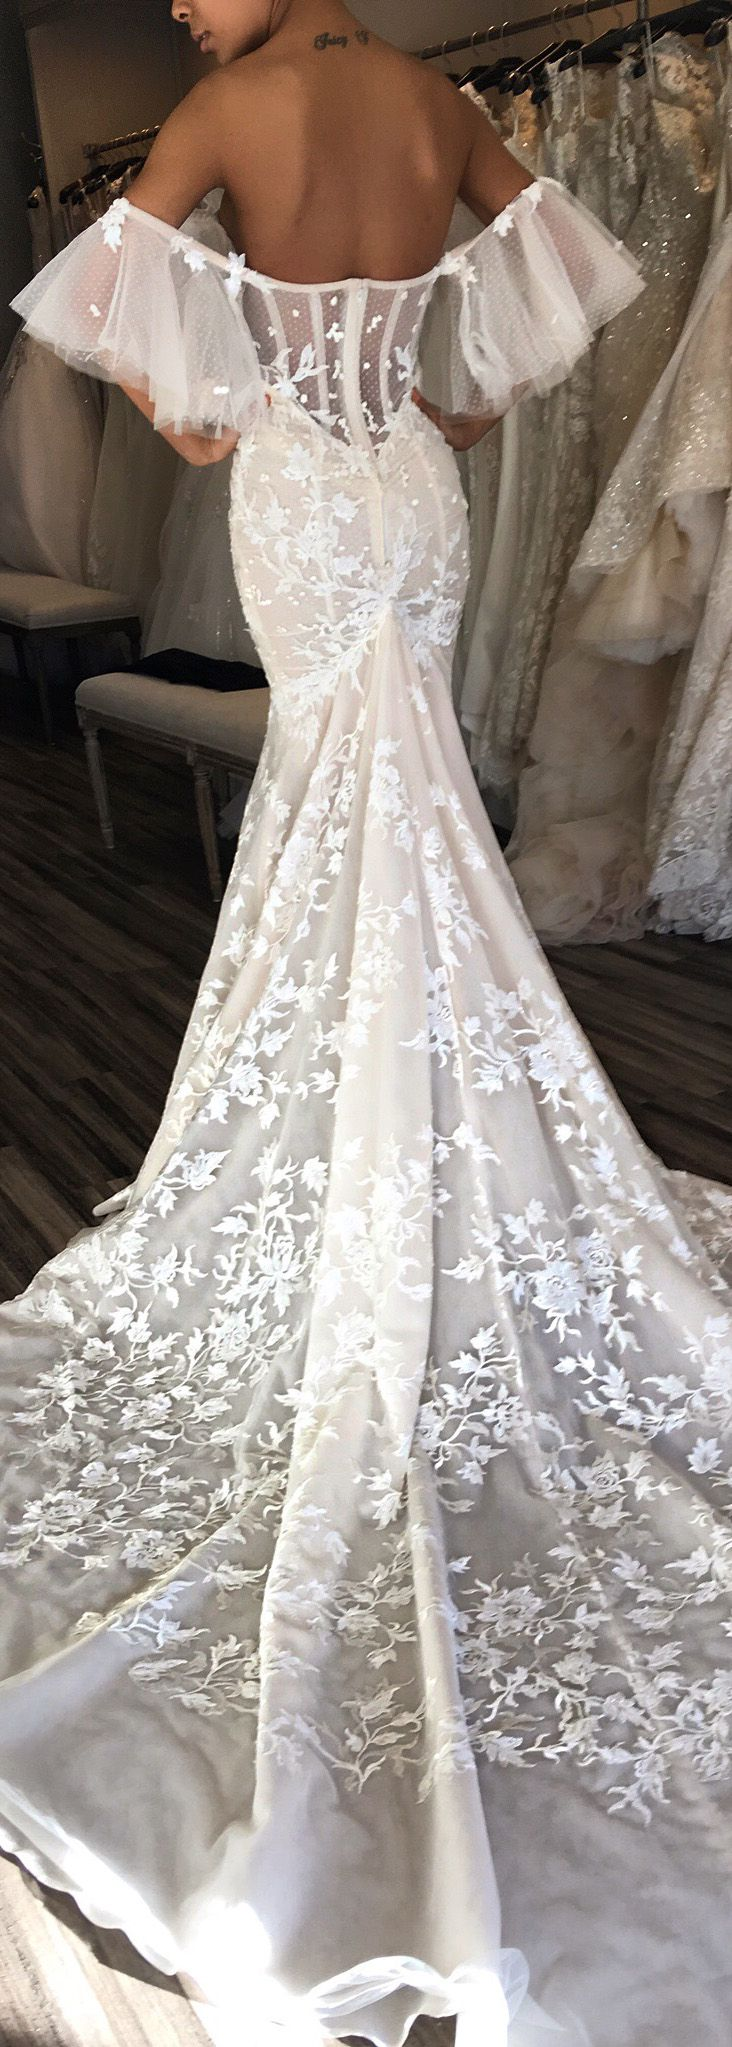 Inspiration De Votre Future Robe Mariage Photo Maleya Choisir Son Style Wedding Dresses Bertawedding Dress Pricesunique